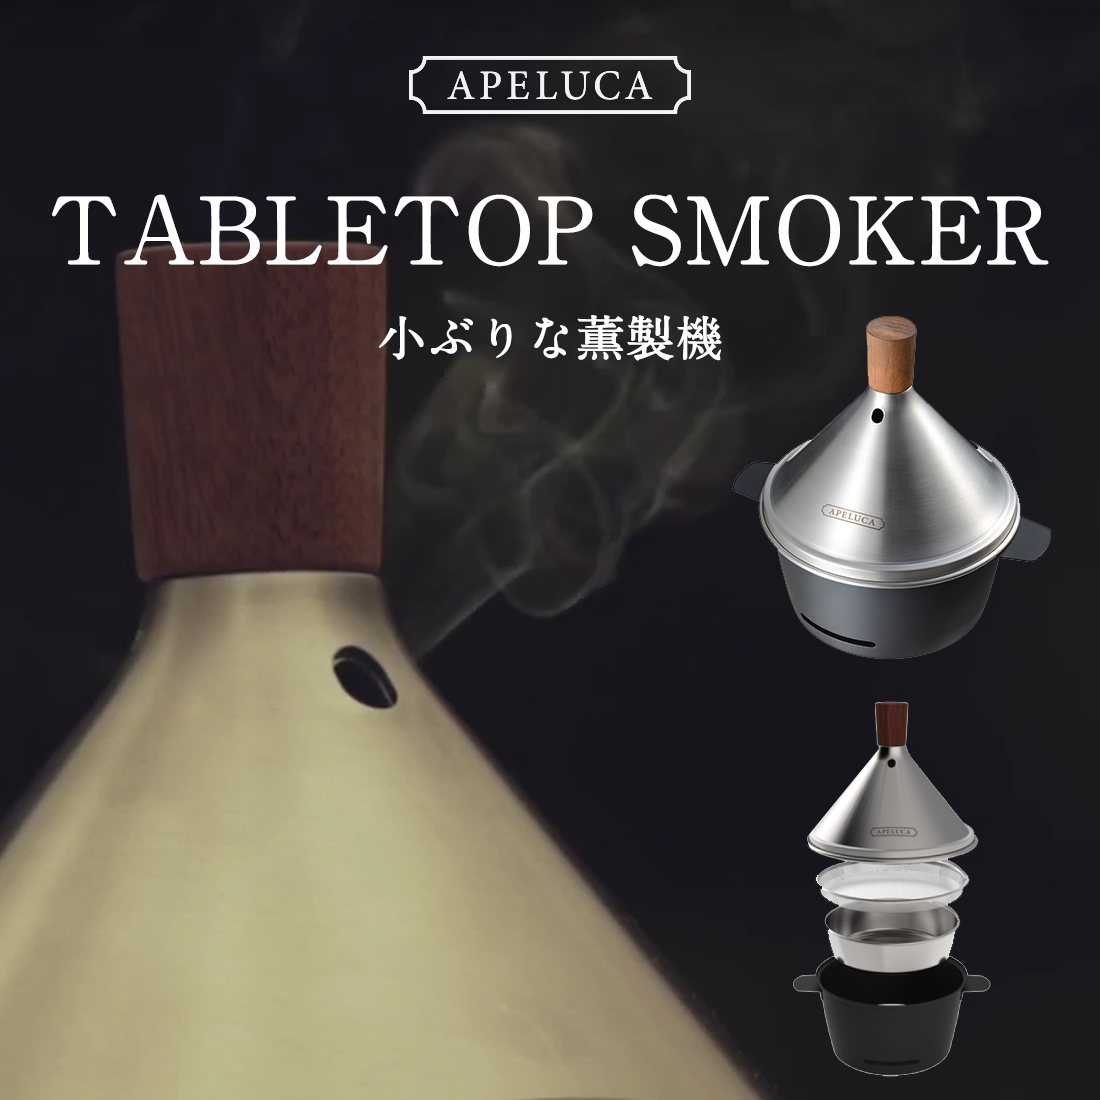 【APELUCA/アペルカ】TABLETOP SMOKER 燻製器くんせい スモーカー レシピ付き キッチン コンパクト コンビニ受取対応